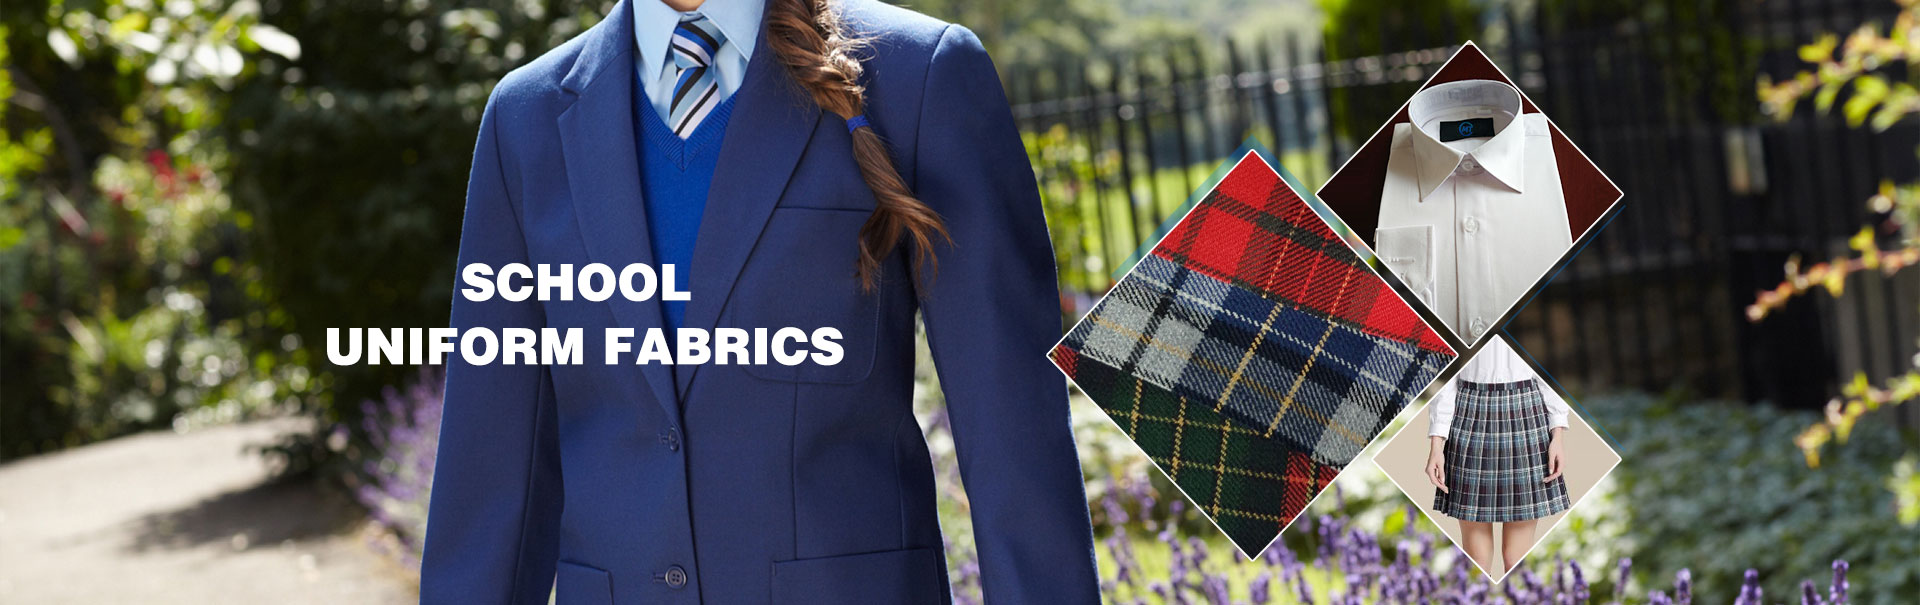 School Uniform Fabrics Manufacturer